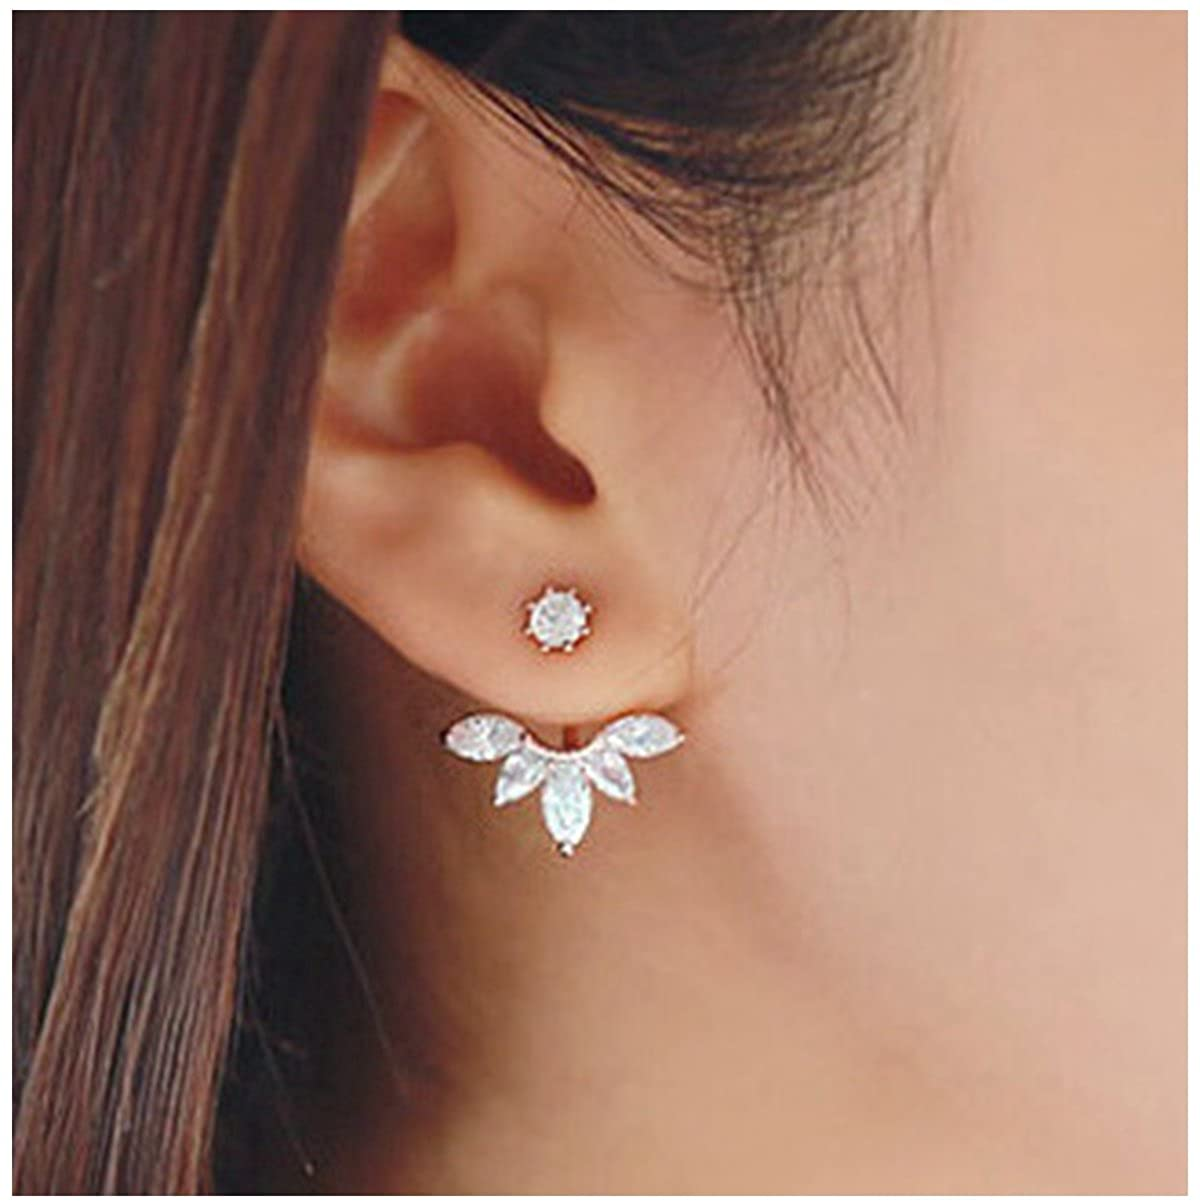 Elensan Fashion Gold Plated Leaf Crystal Ear Jacket Double Sided Swing Stud Earrings Gift A004